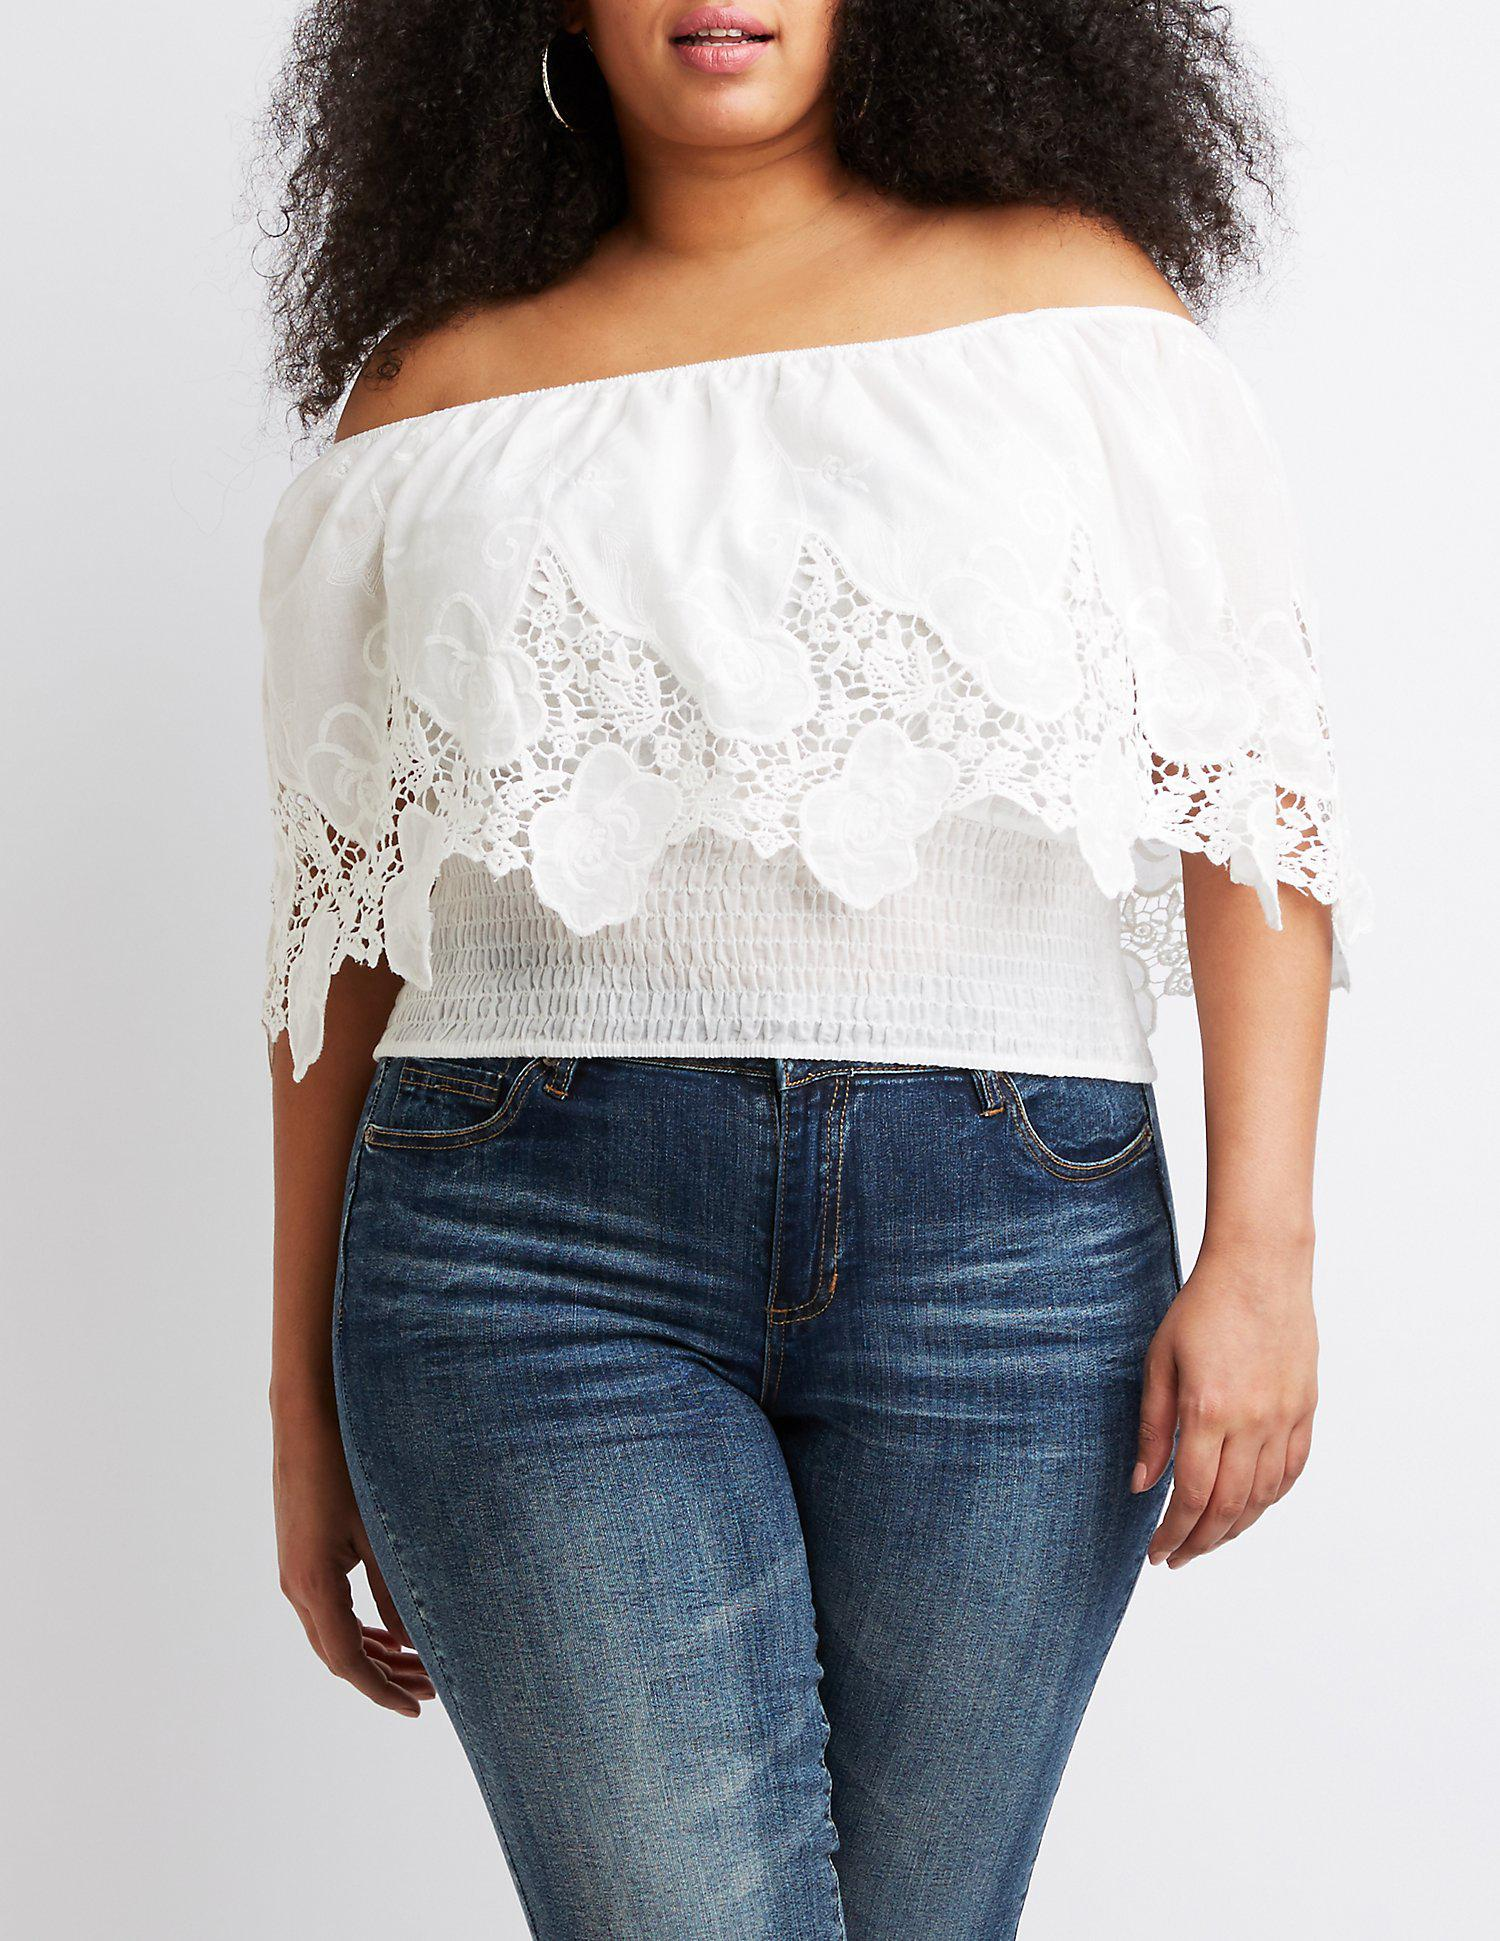 9d8f131423fb0 Lyst - Charlotte Russe Plus Size Eyelet Off-the-shoulder Top in White